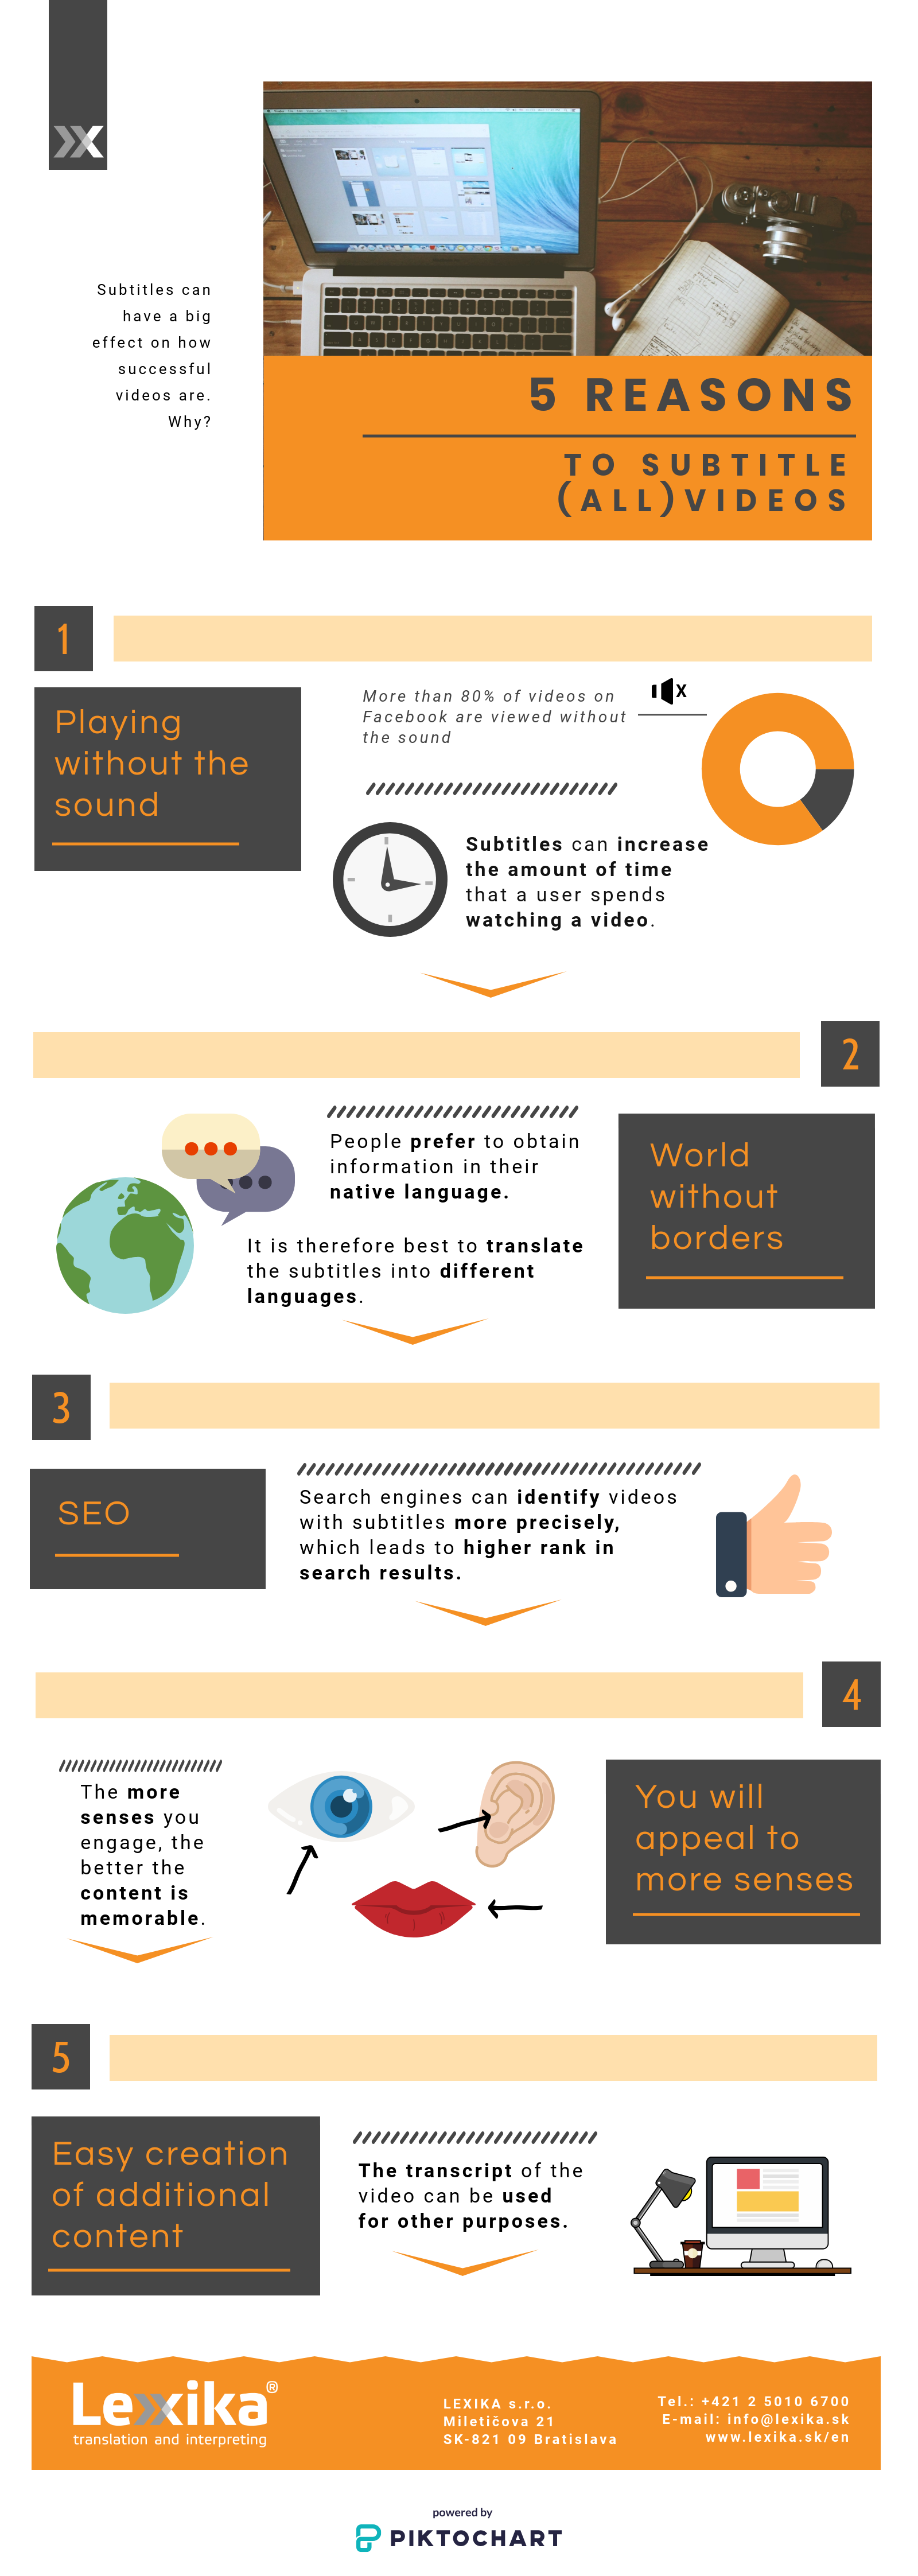 5 reasons to subtitle videos infographic